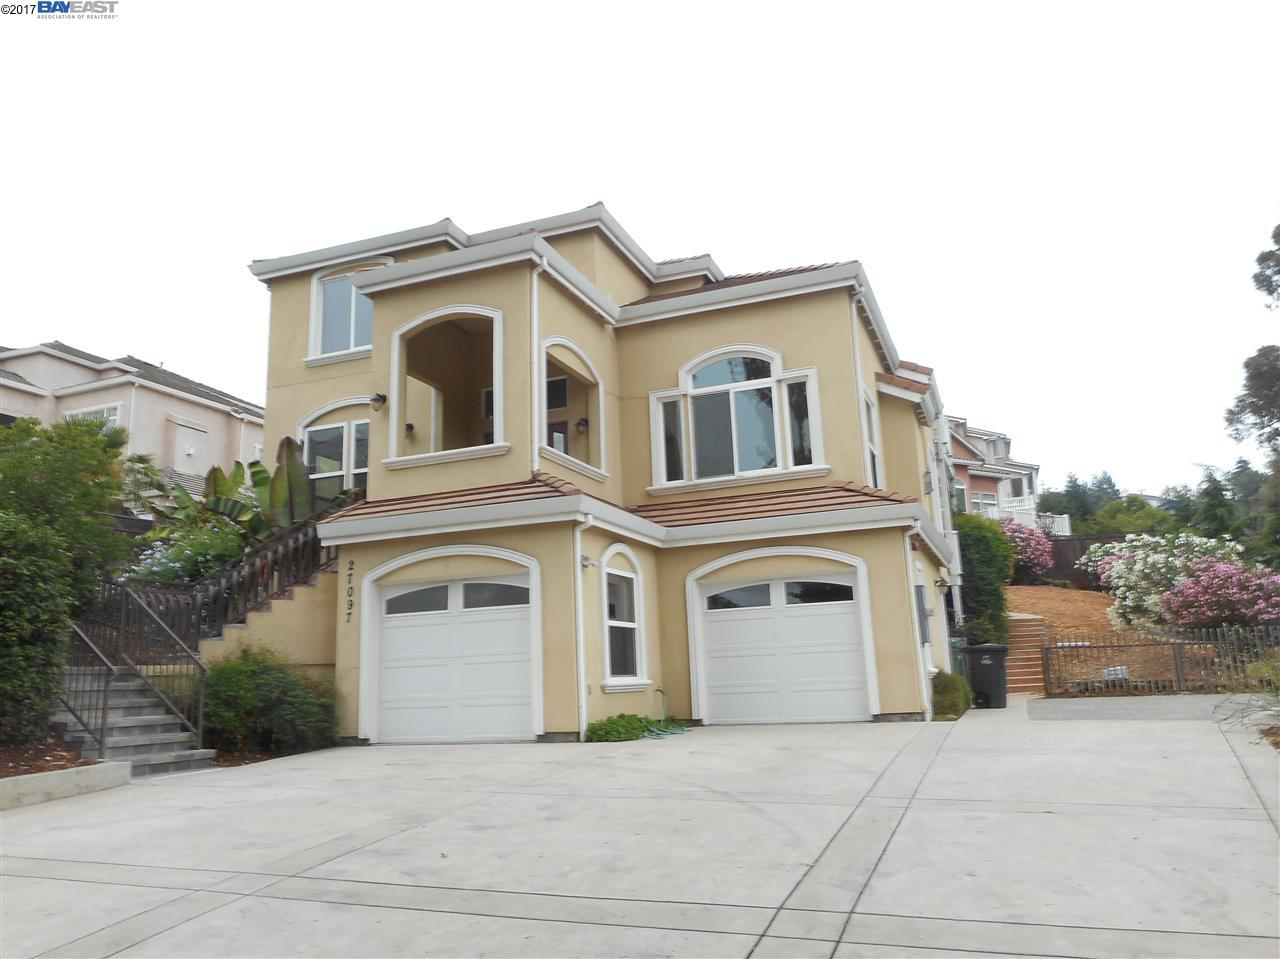 Single Family Home for Sale at 27097 Call Avenue Hayward, California 94524 United States